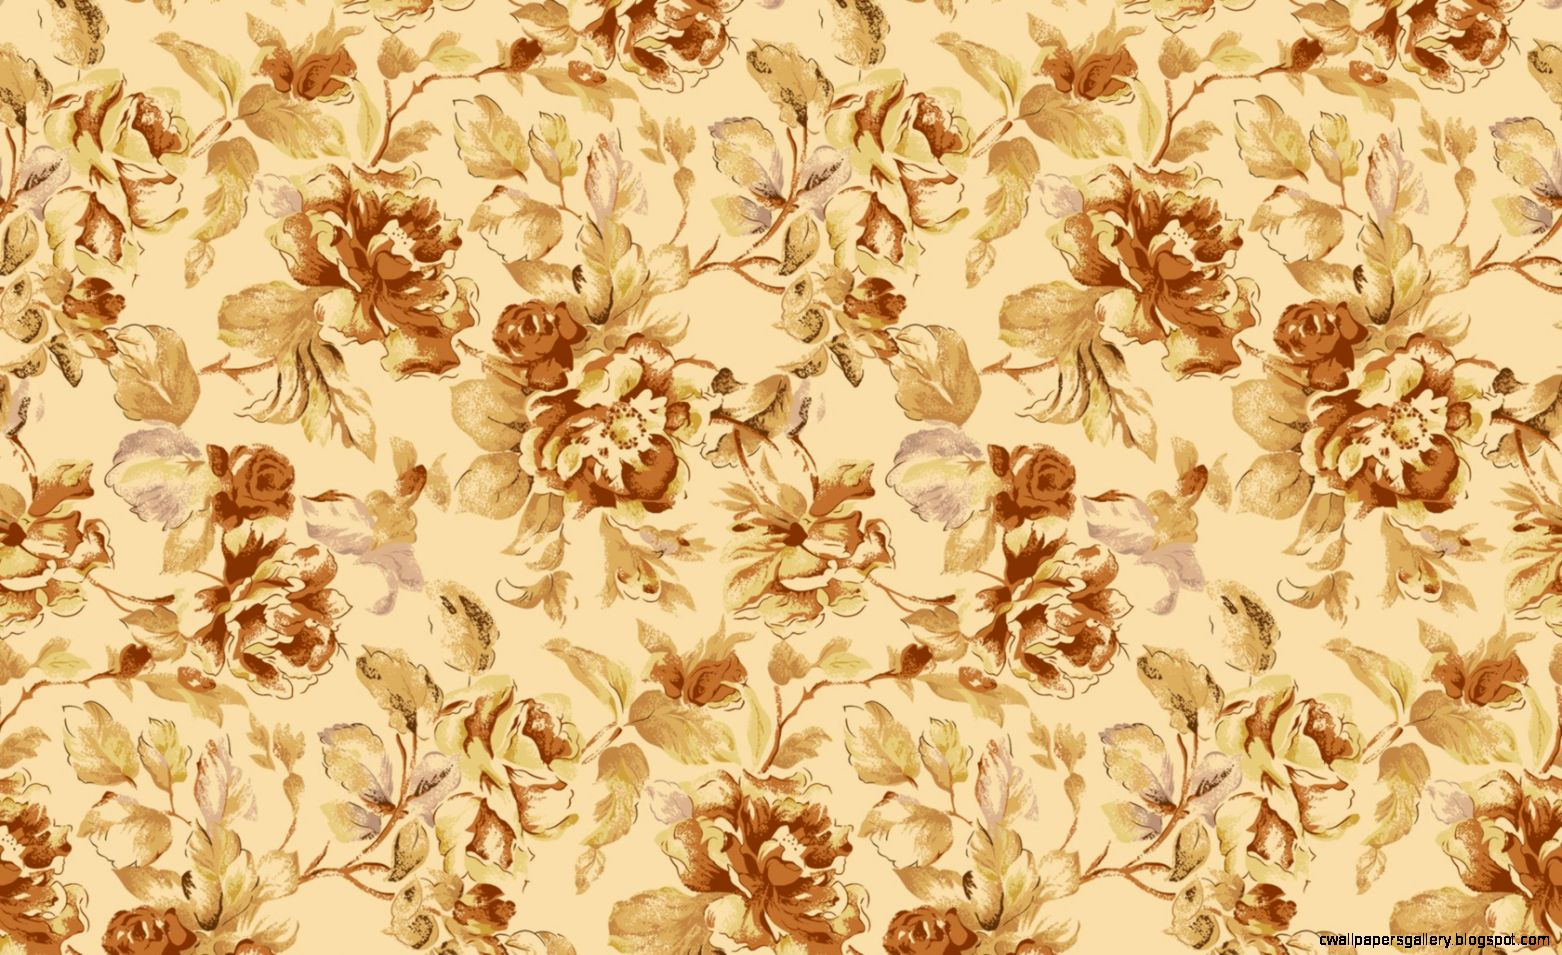 Fl Pattern Wallpaper by Mindy Wildgrube on FL  Flowers HDQ